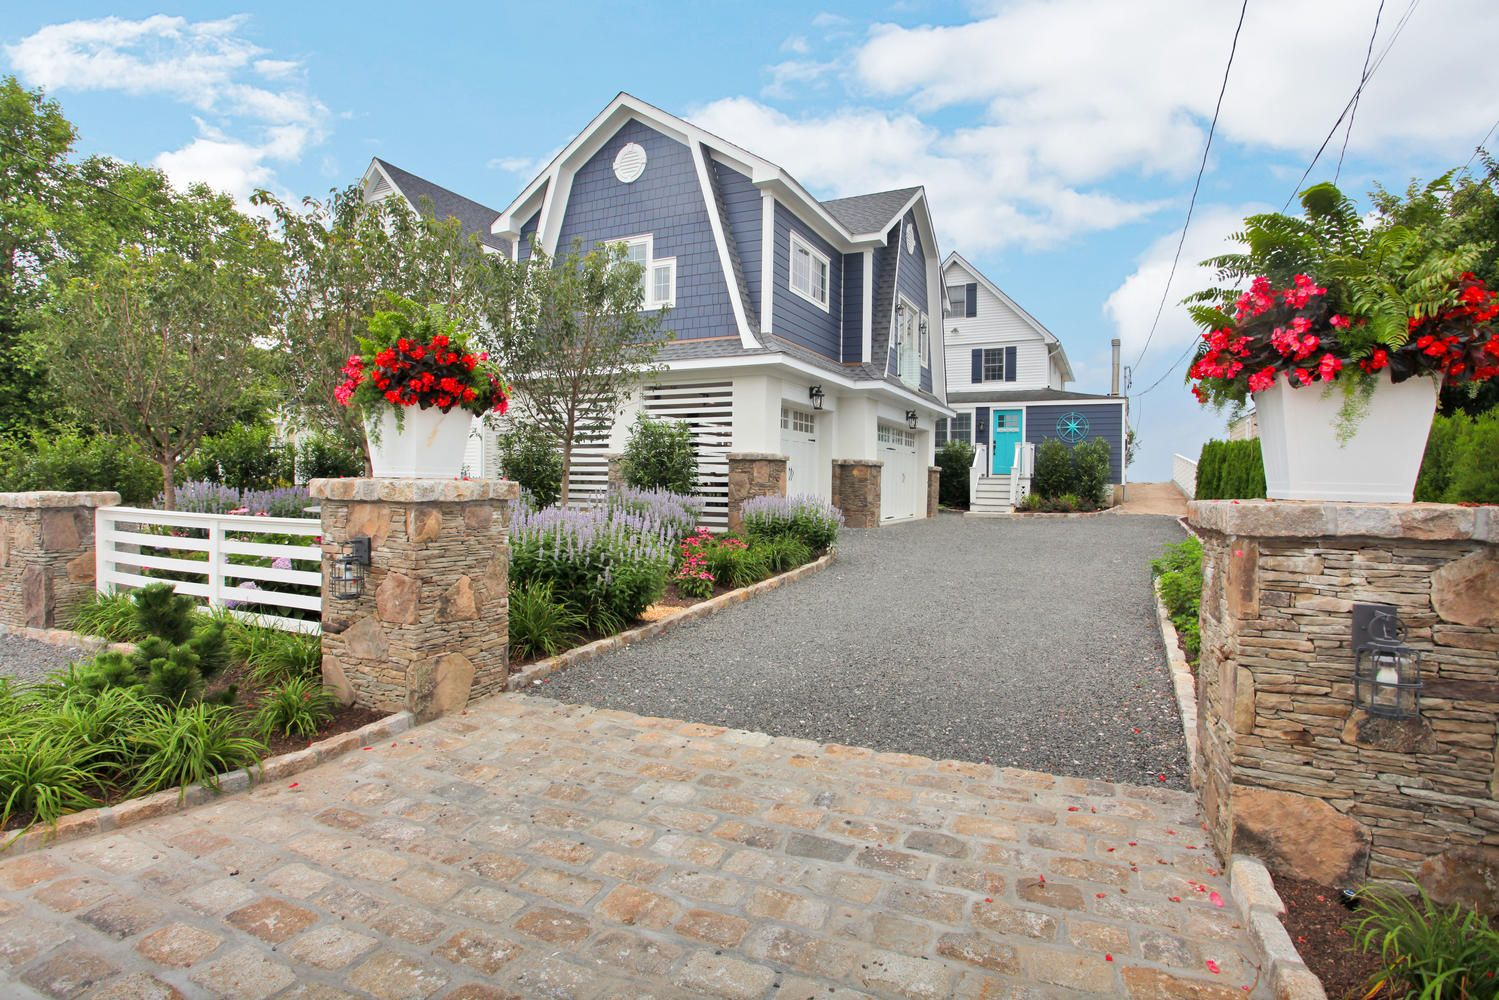 1157 Fairfield Beach Rd Fairfield Ct Offered By Elizabeth Altobelli Elizabeth Altobelli Raveis Com Https With Images Fairfield Beach Real Estate Real Estate Agency